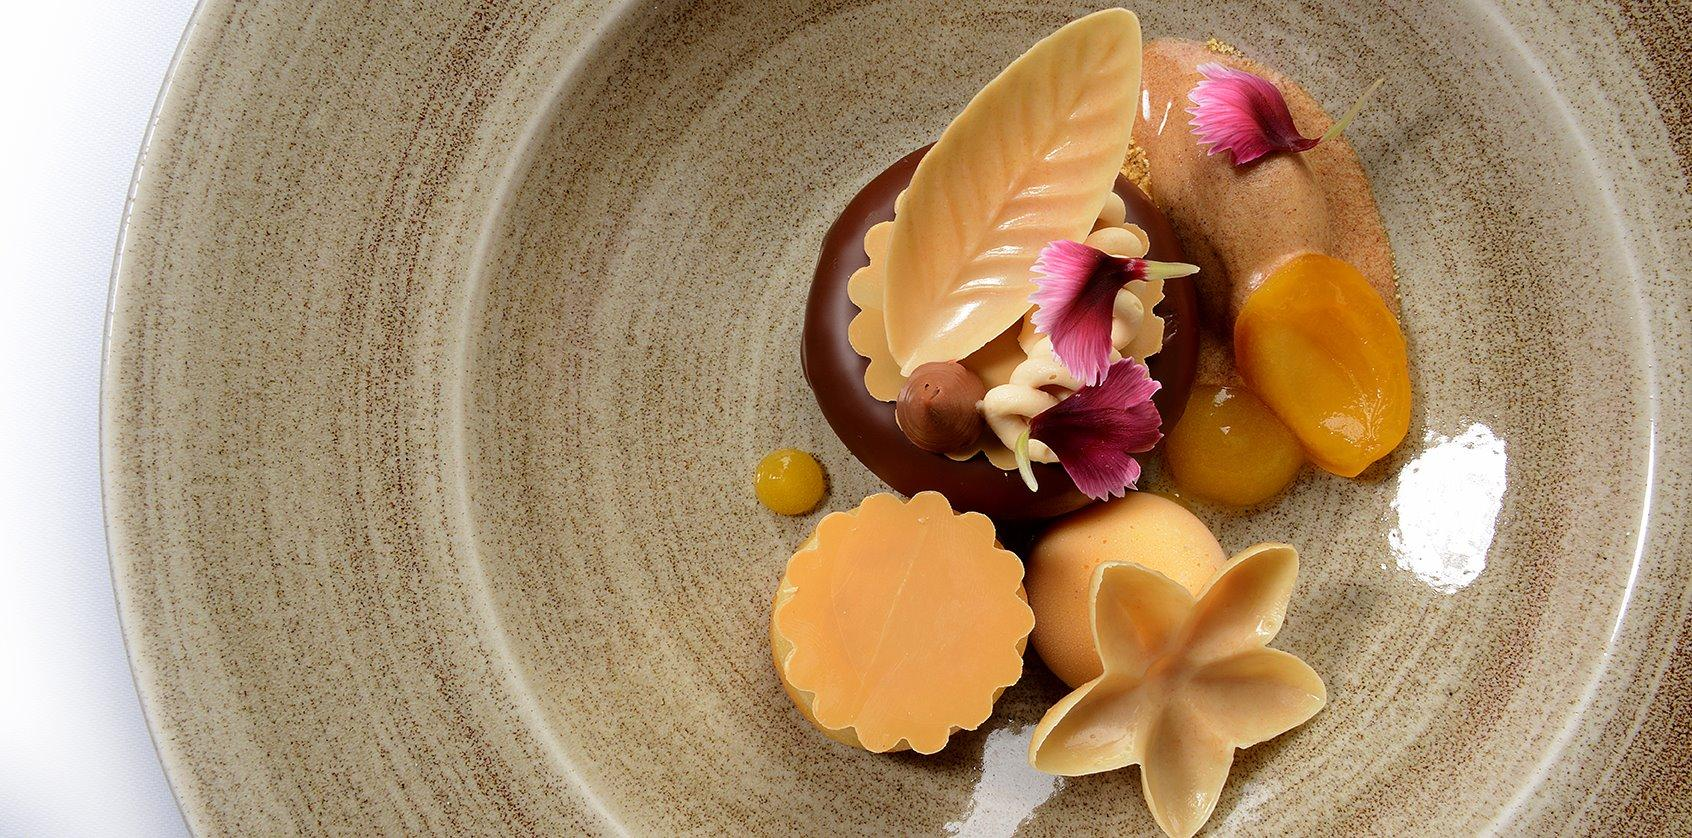 A Foodie's Guide to the Best Restaurants in the Algarve, Portugal